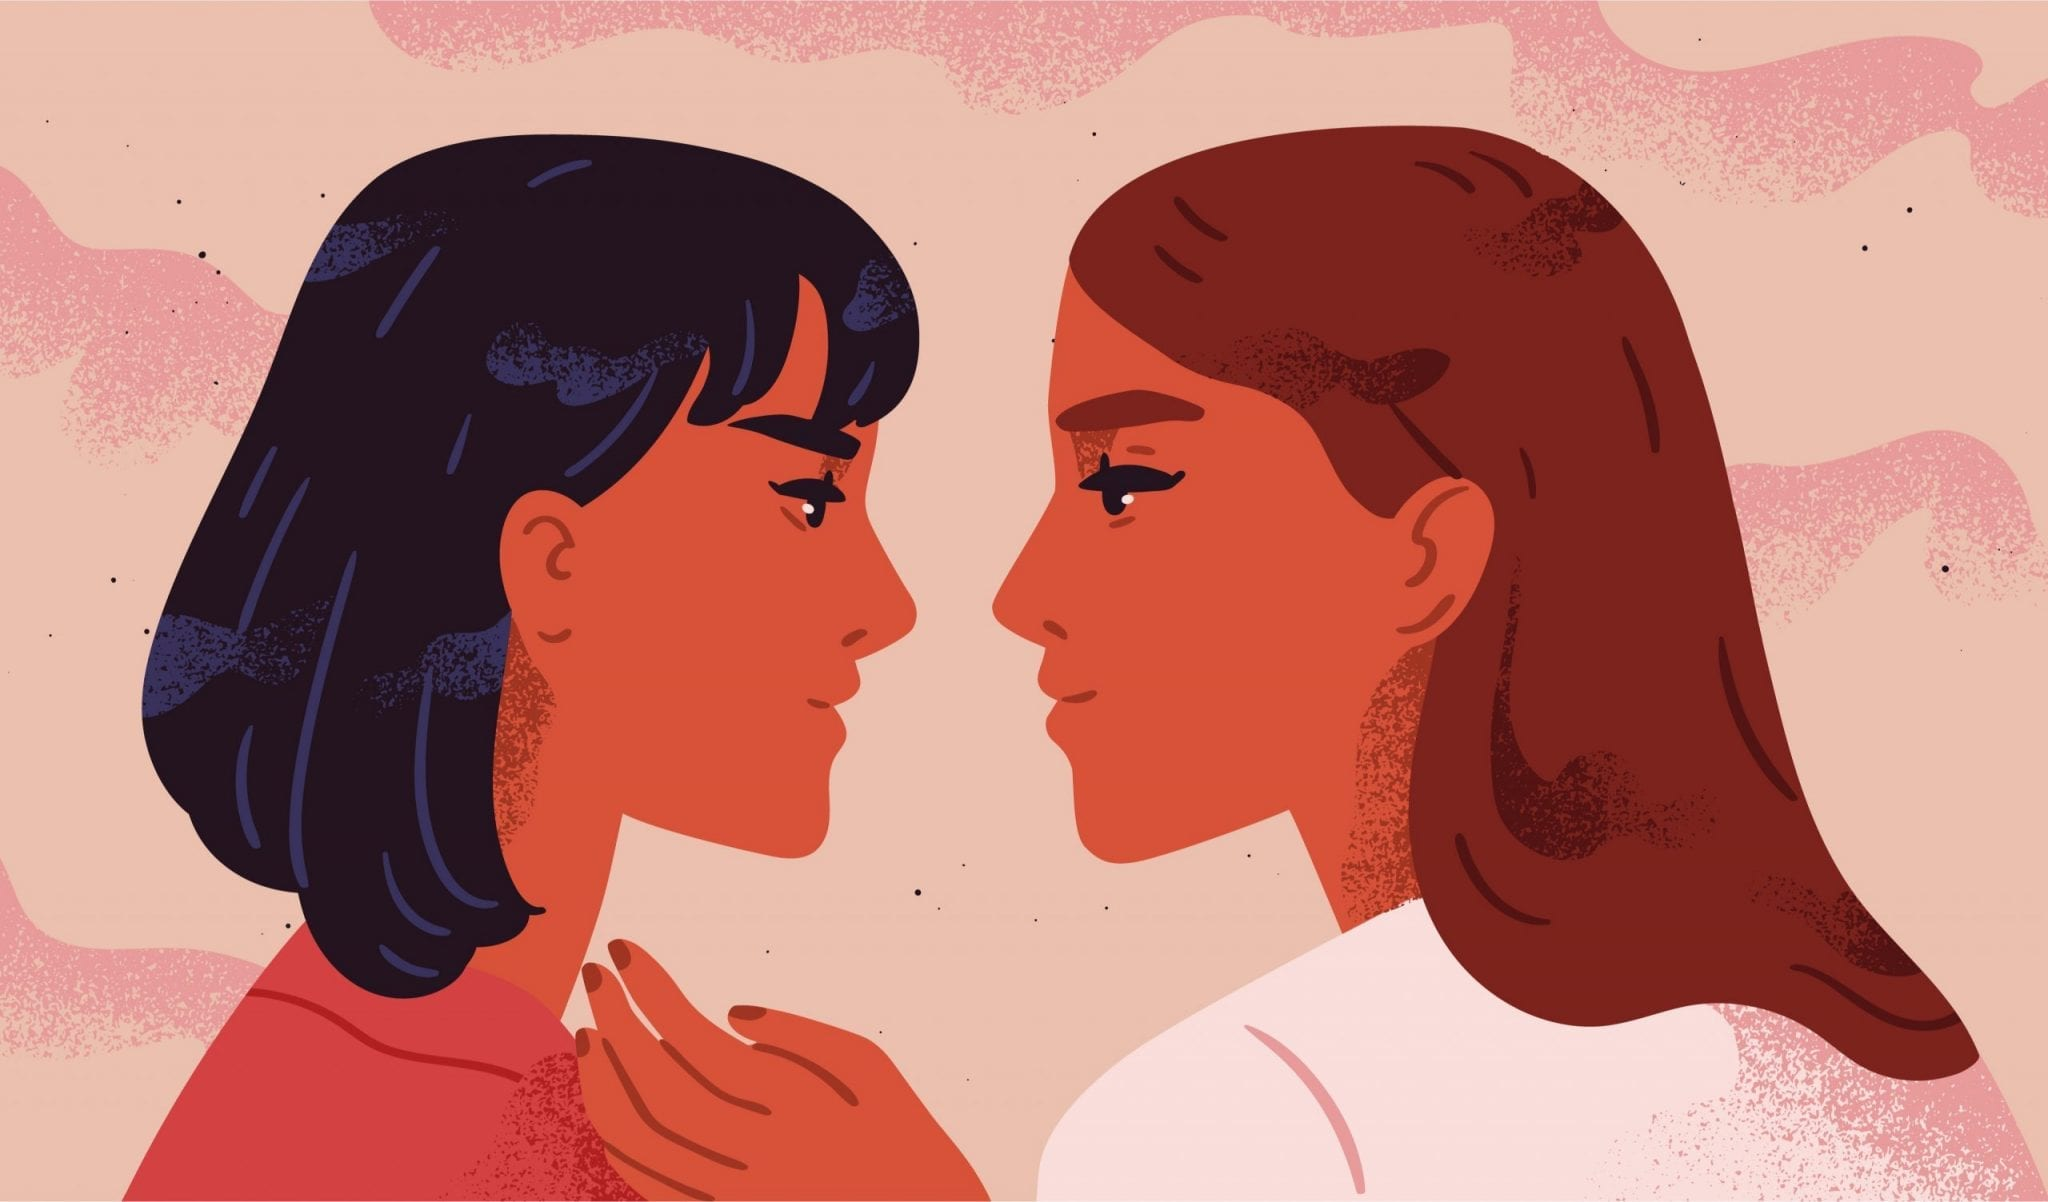 Portrait of Lesbian Couple Flirting With Each Other. Homosexual Romantic Partners on Date. Concept of Love, Passion and Homosexuality